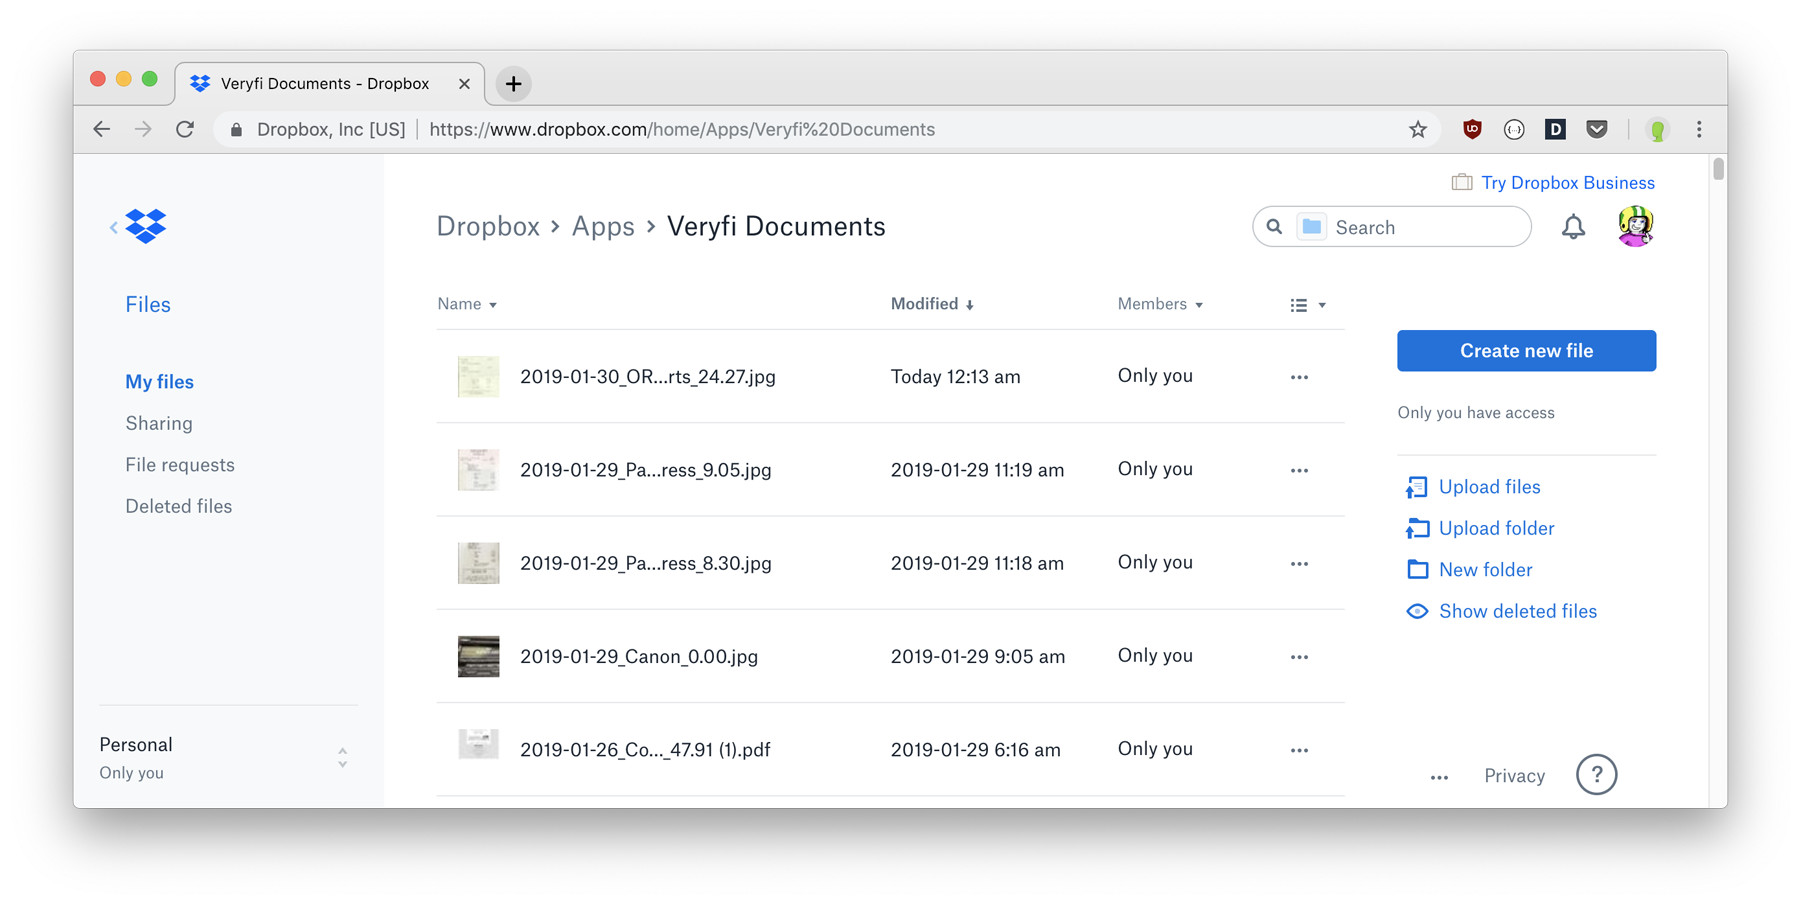 Dropbox Veryfi Slurp Integration showing Veryfi Documents folder where Receipts, Bills & Invoices are backed up to